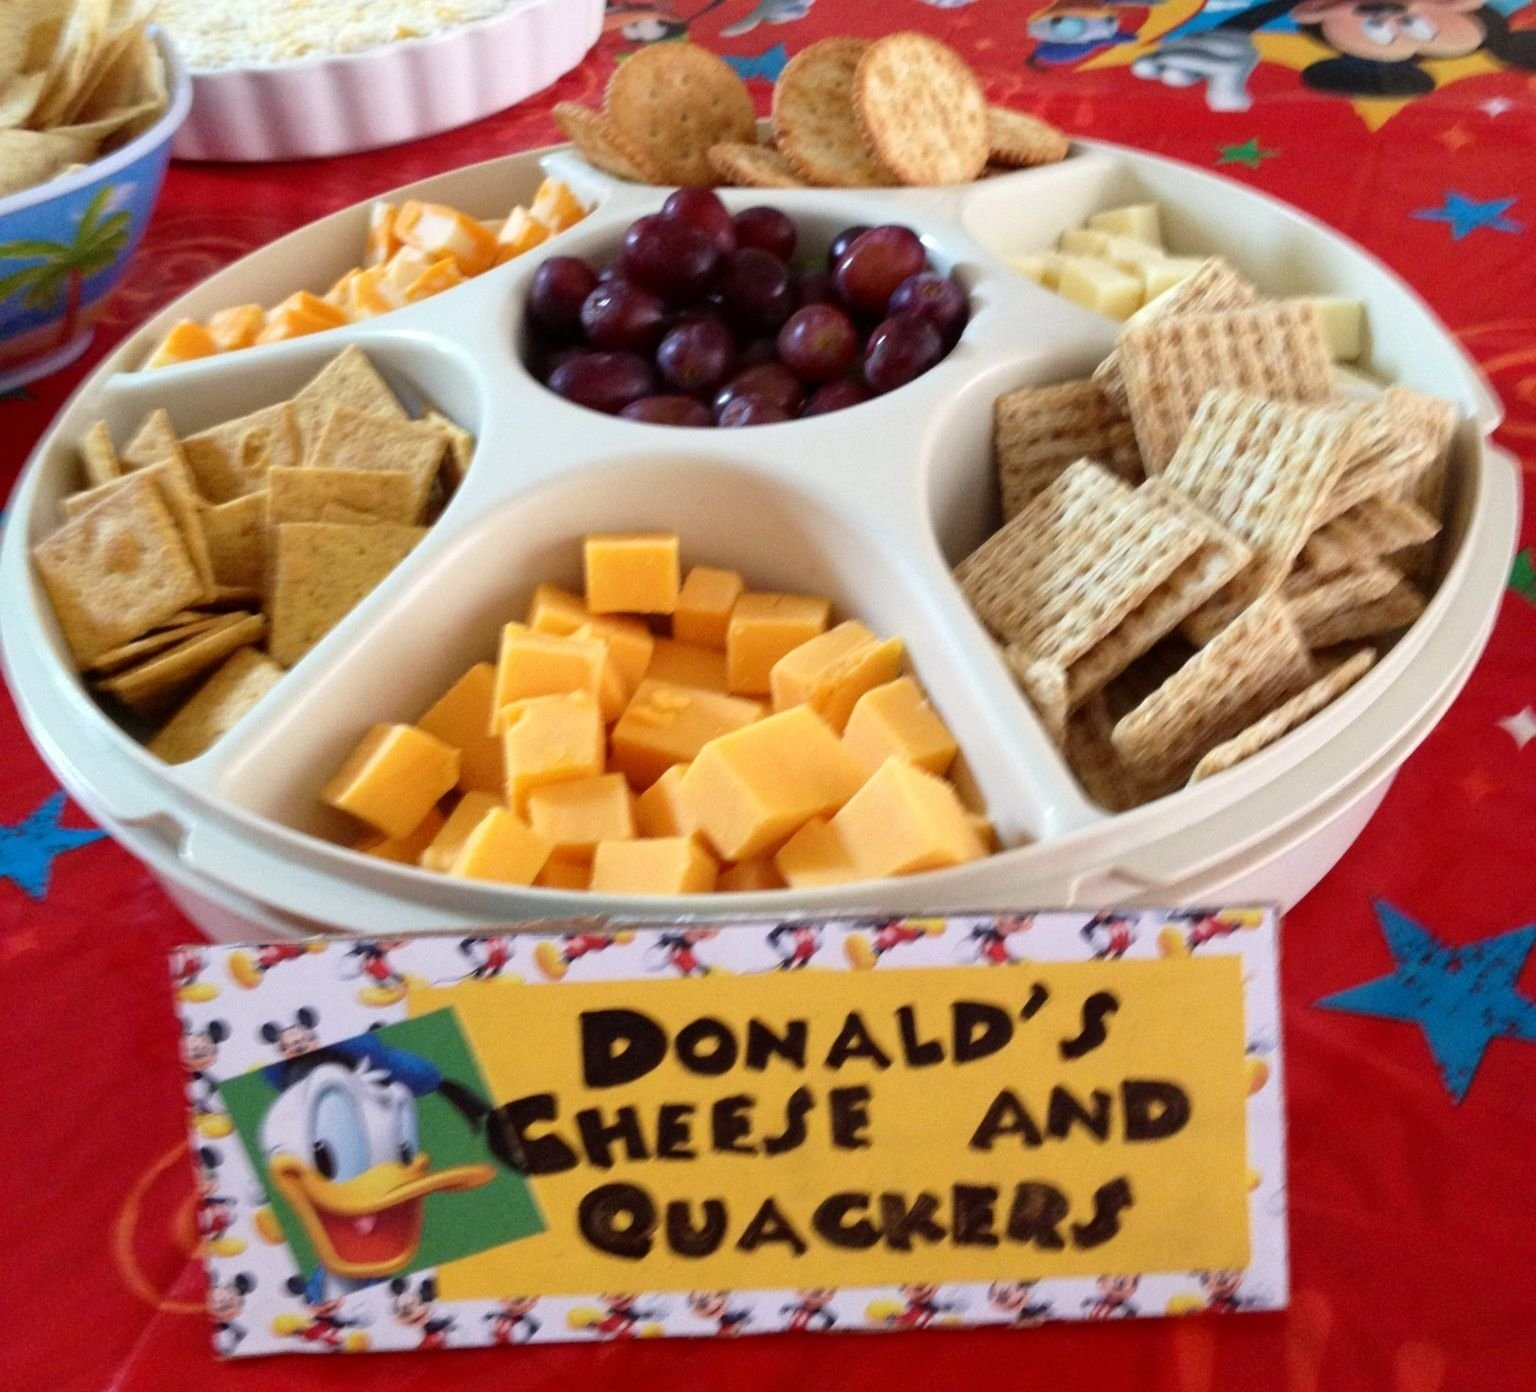 10 Ideal Mickey Mouse Birthday Party Food Ideas donalds cheese and quackers kids party pinterest birthday 2 2020